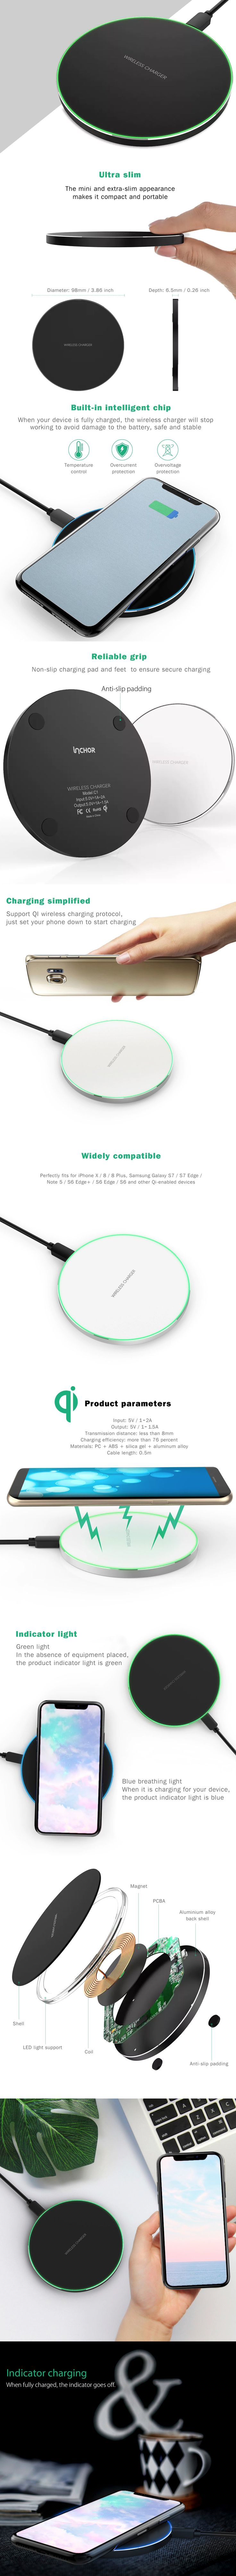 Less than 8$ - 9,5€ INCHOR C1 Ultra Slim Qi Wireless Fast Charger - Cargador Qi inalámbrico #qicharger Suitable for iPhone X / 8 / 8 Plus, Samsung Galaxy S7 / S7 Edge / Note 5 / S6 Edge+ / S6 Edge / S6 and other Qi-enabled devices